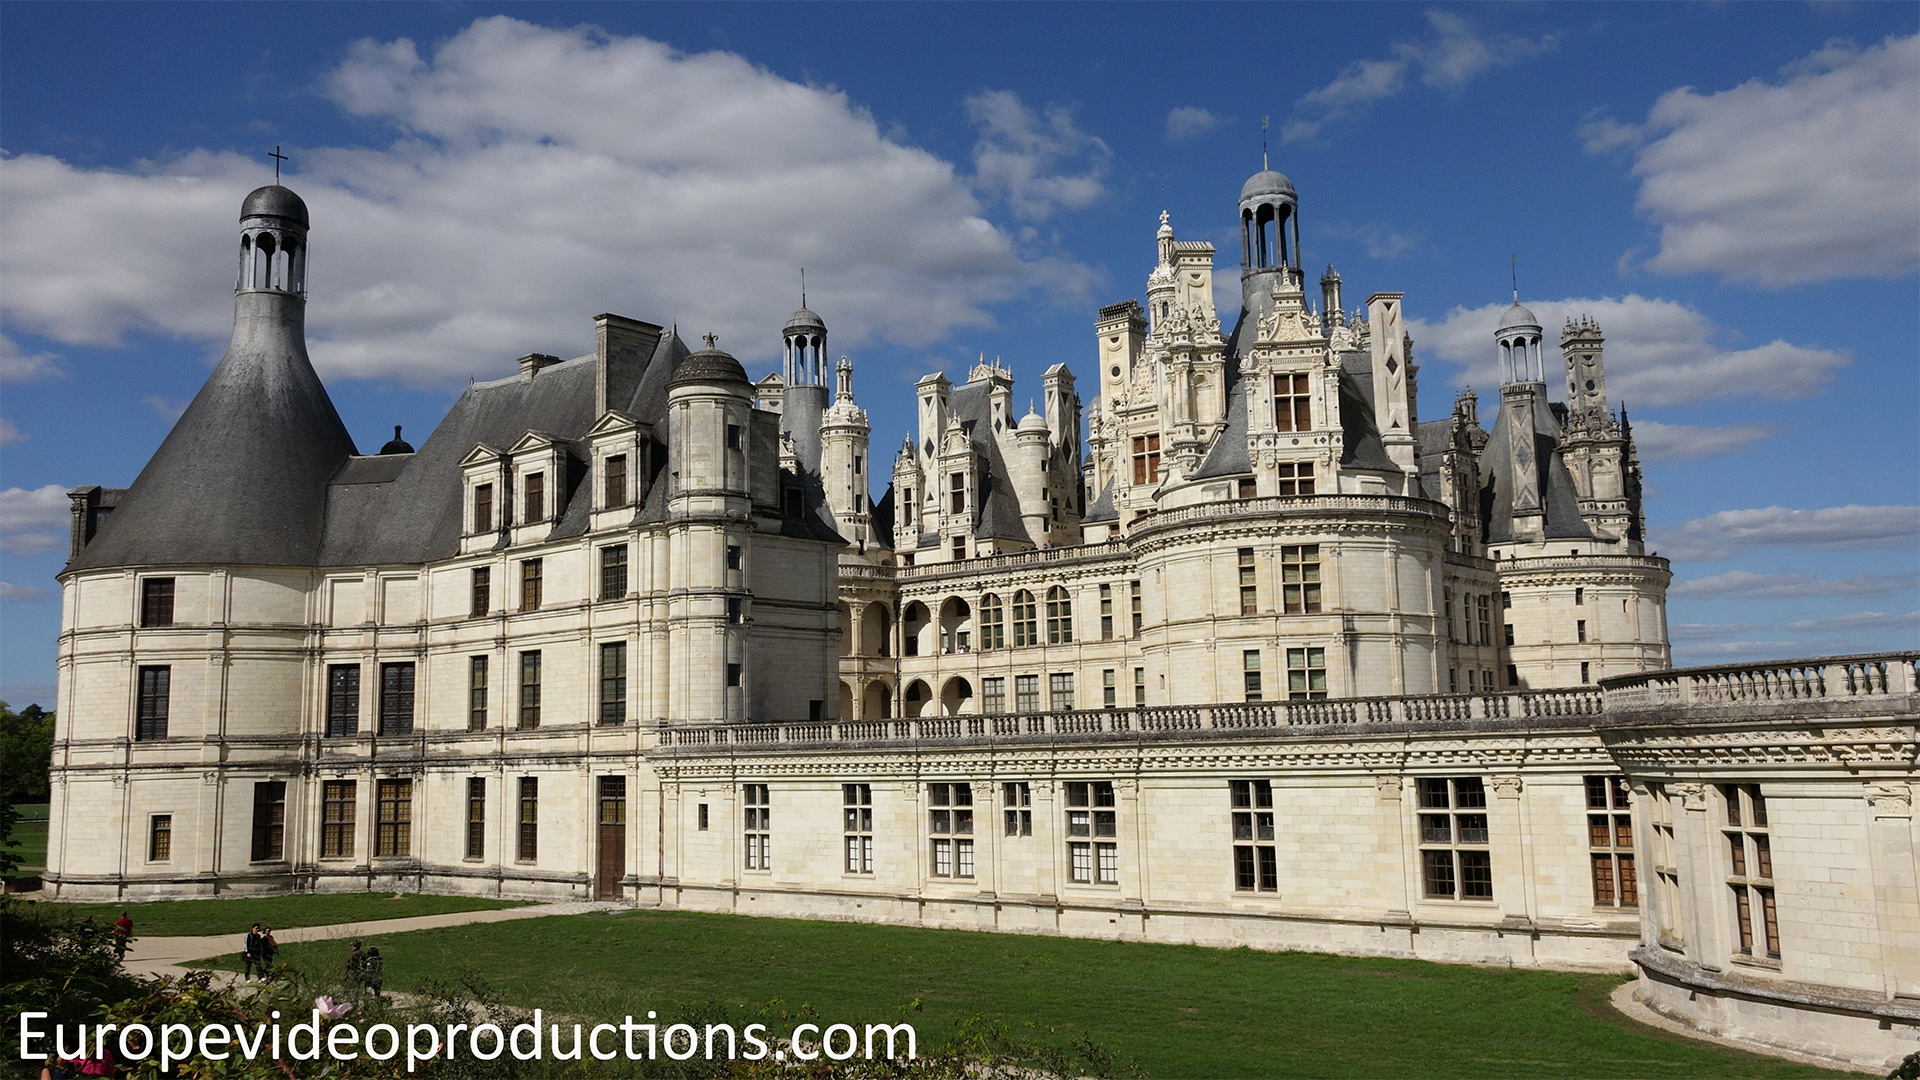 Castle of Chambord in the Loire Valley in France